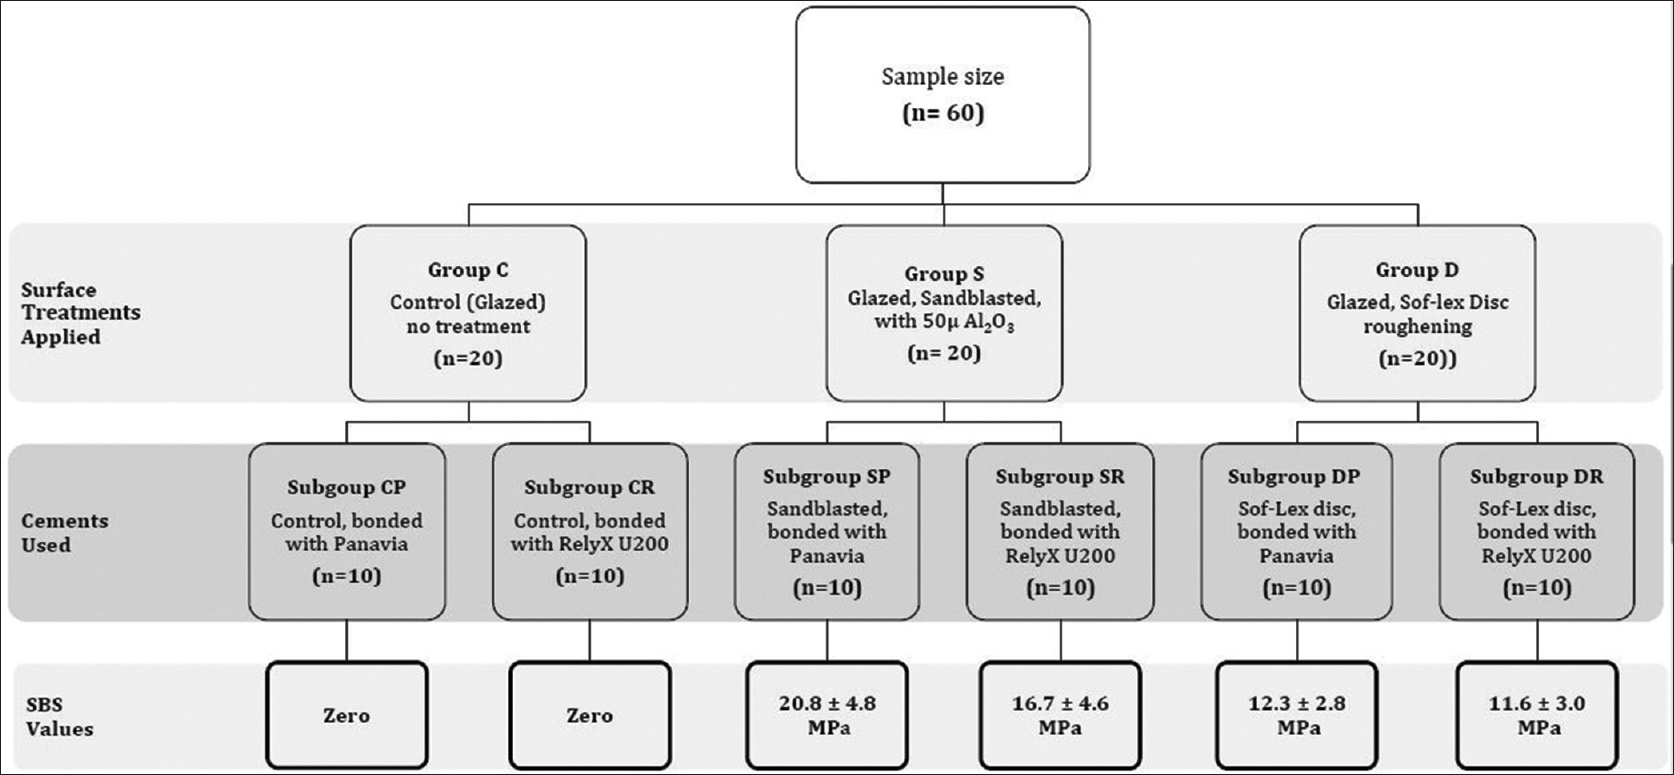 Figure 1: Summary of groups, subgroups, variables and outcomes